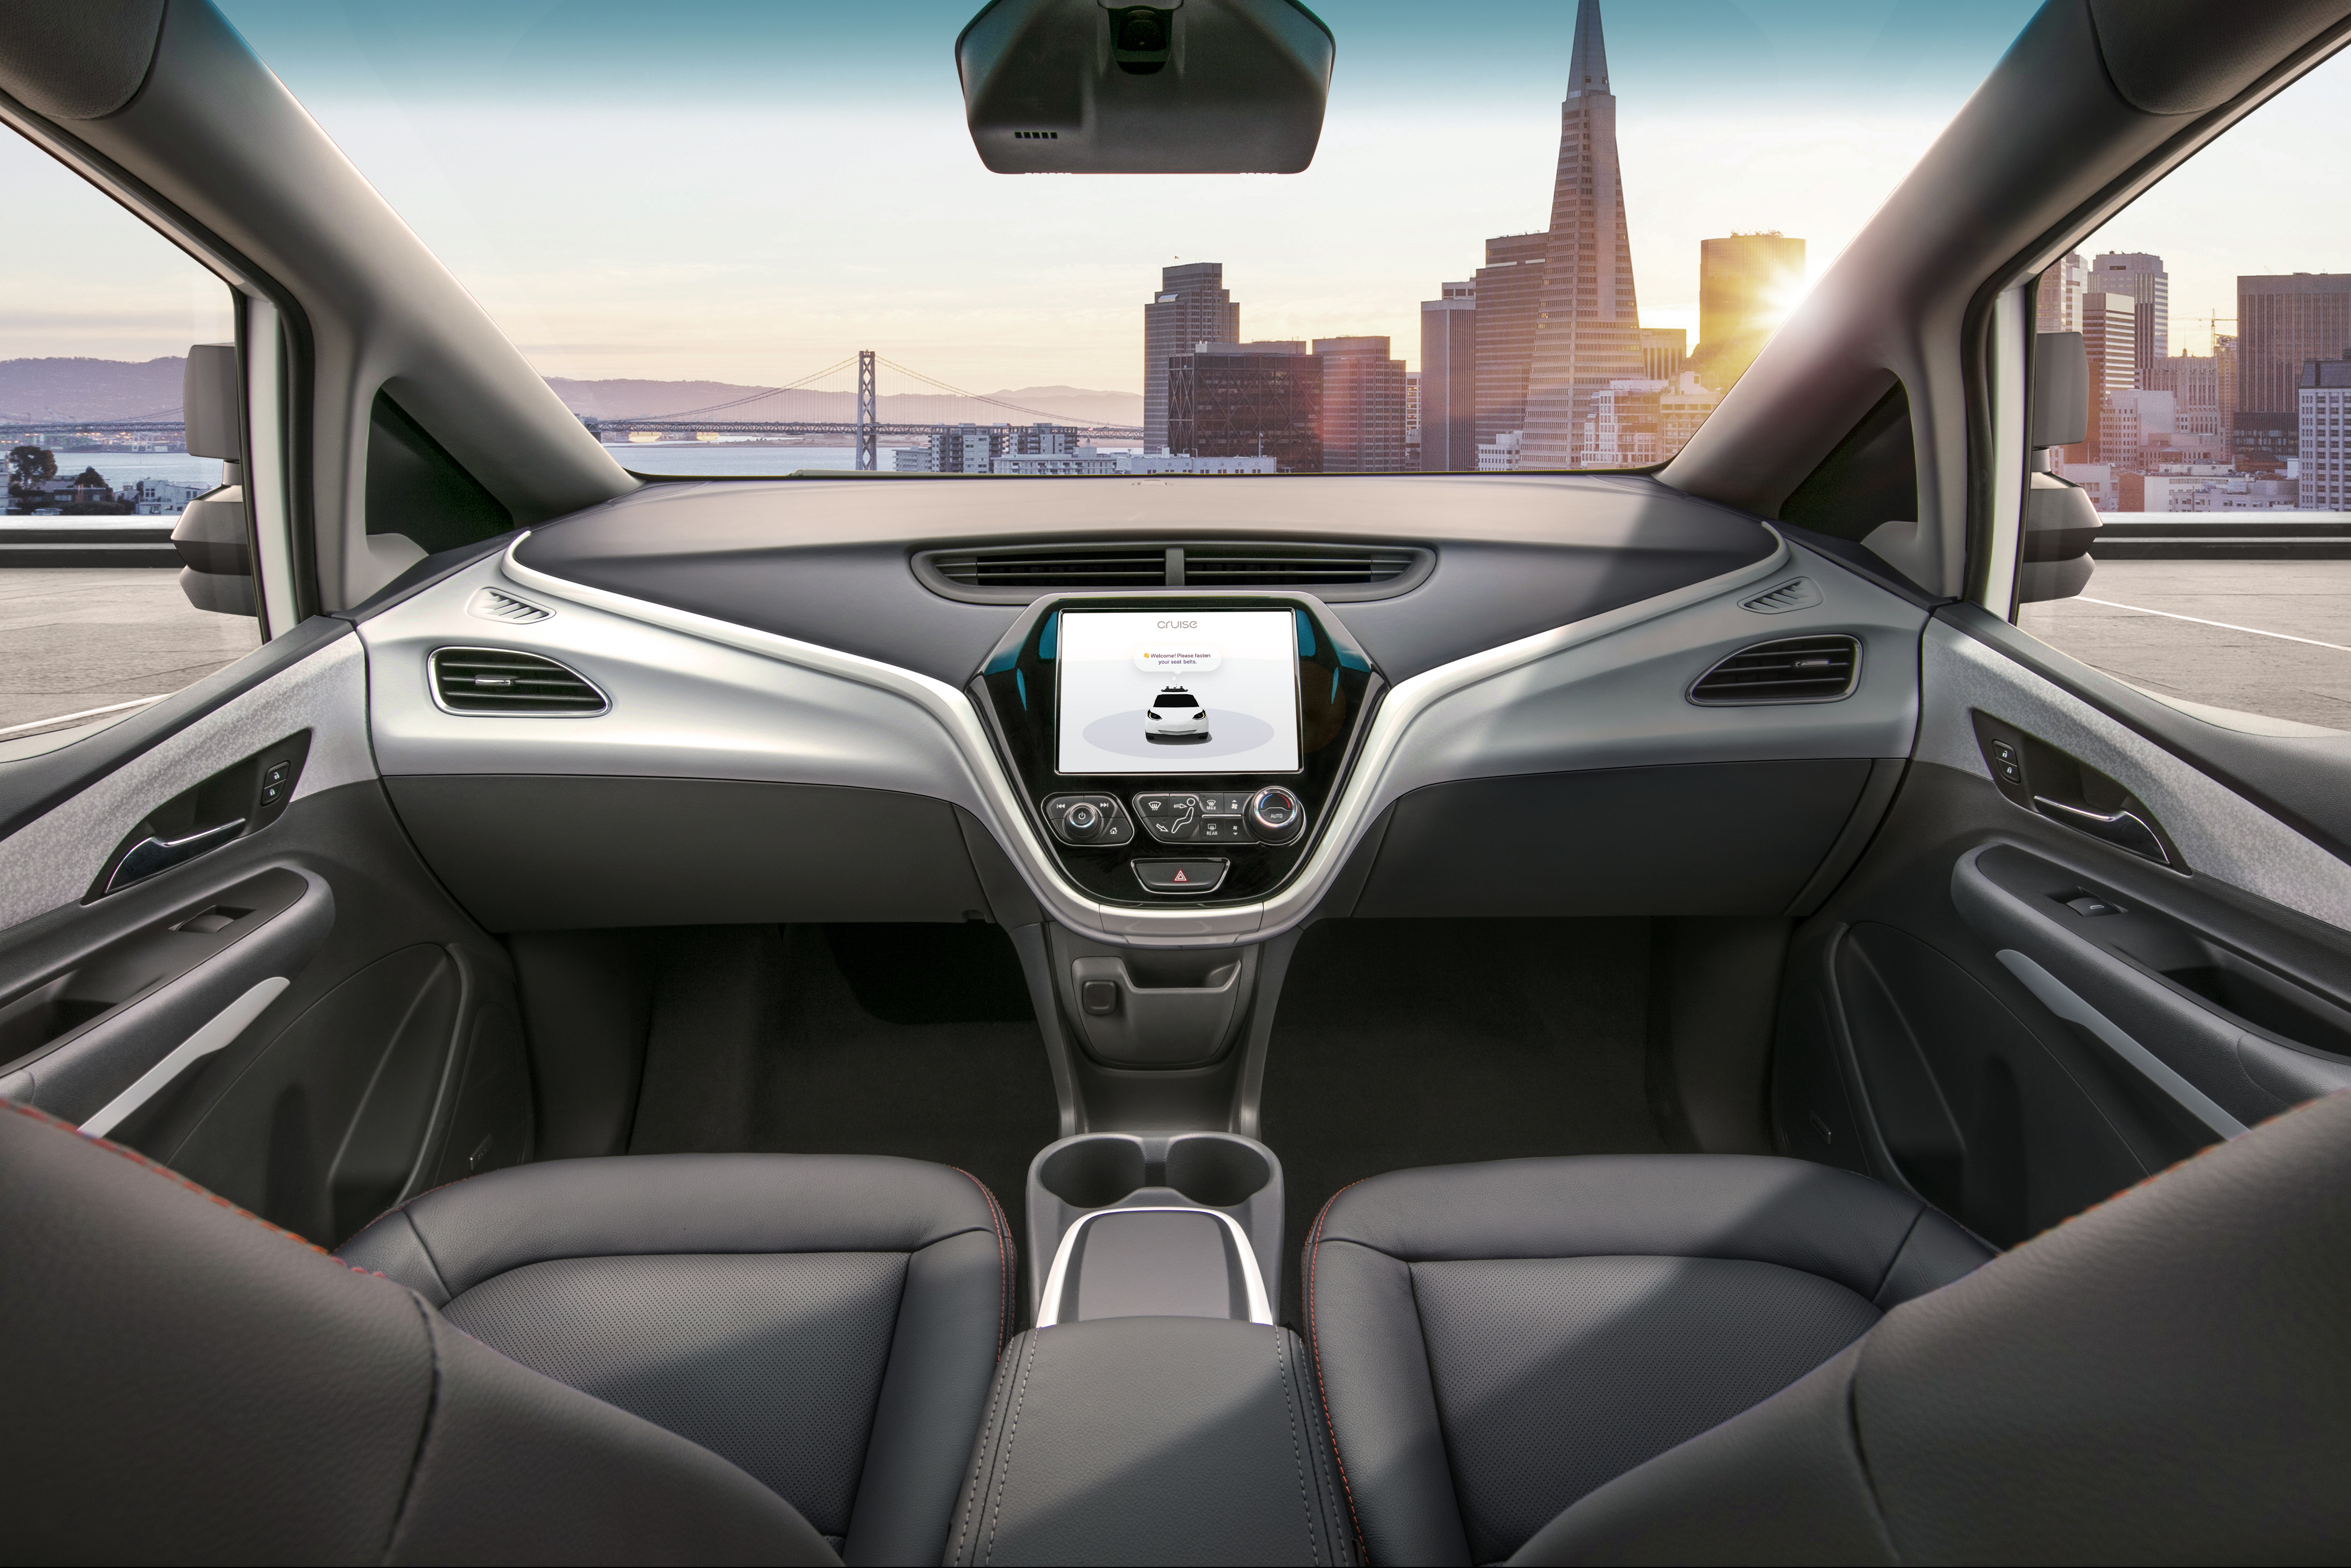 GM revealed the first image of its fourth generation autonomous vehicle called the Cruise AV.